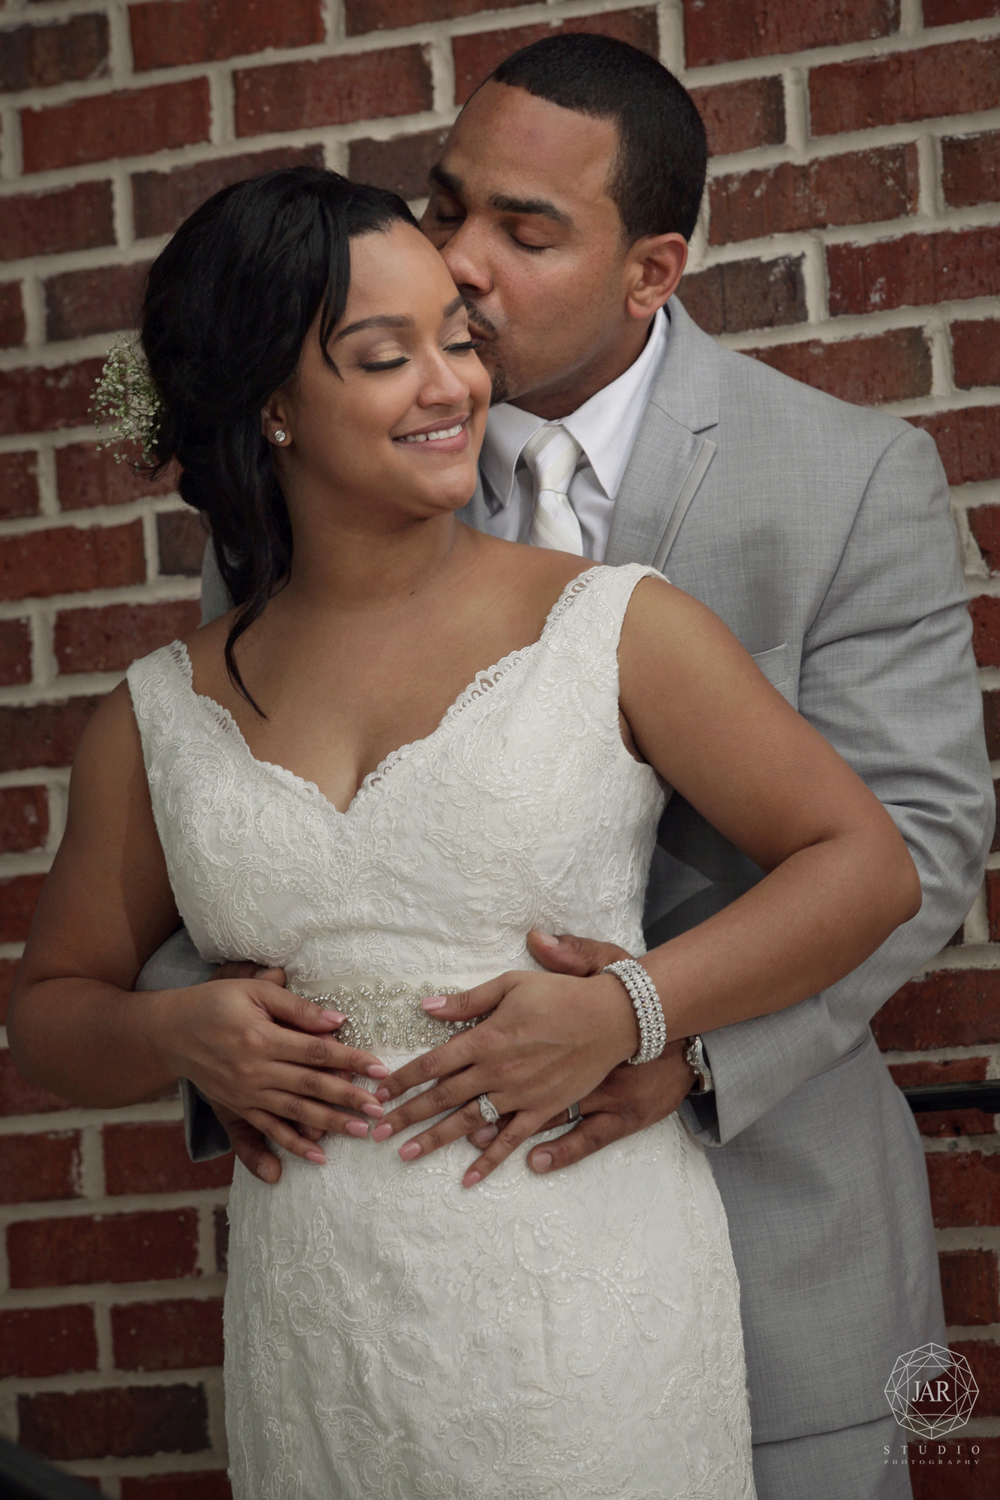 23-romantic-sweet-wedding-photography-jarstudio-orlando-fl.JPG